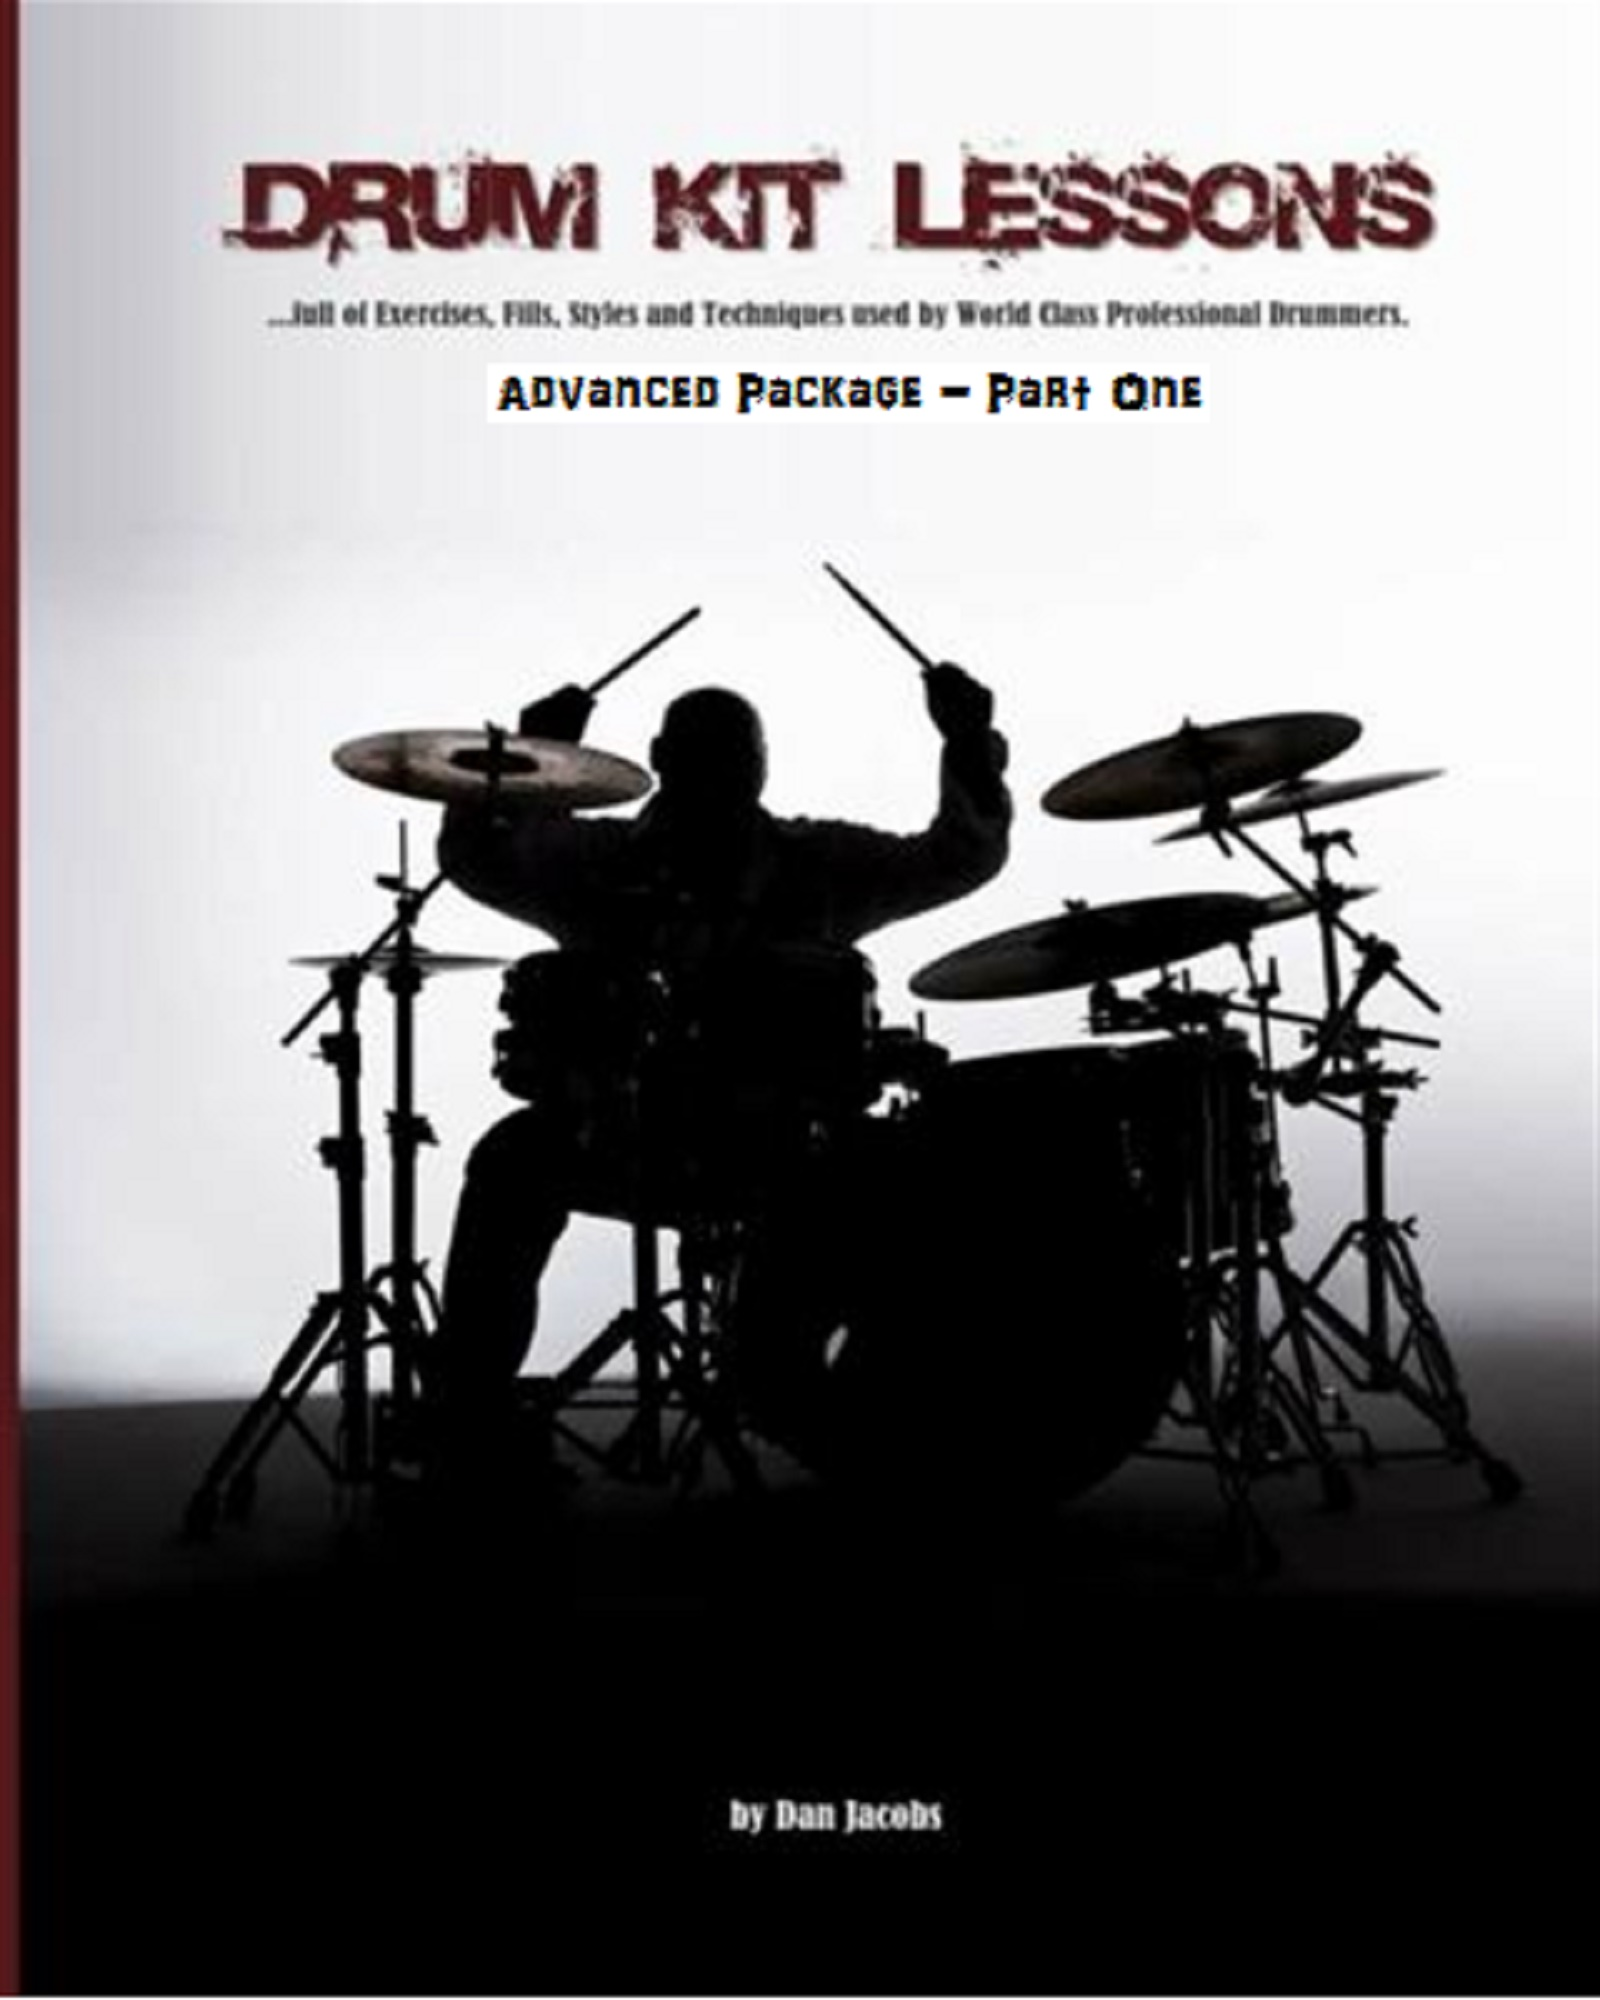 Drum Kit Lessons (Advanced Part One), an Ebook by Dan Jacobs